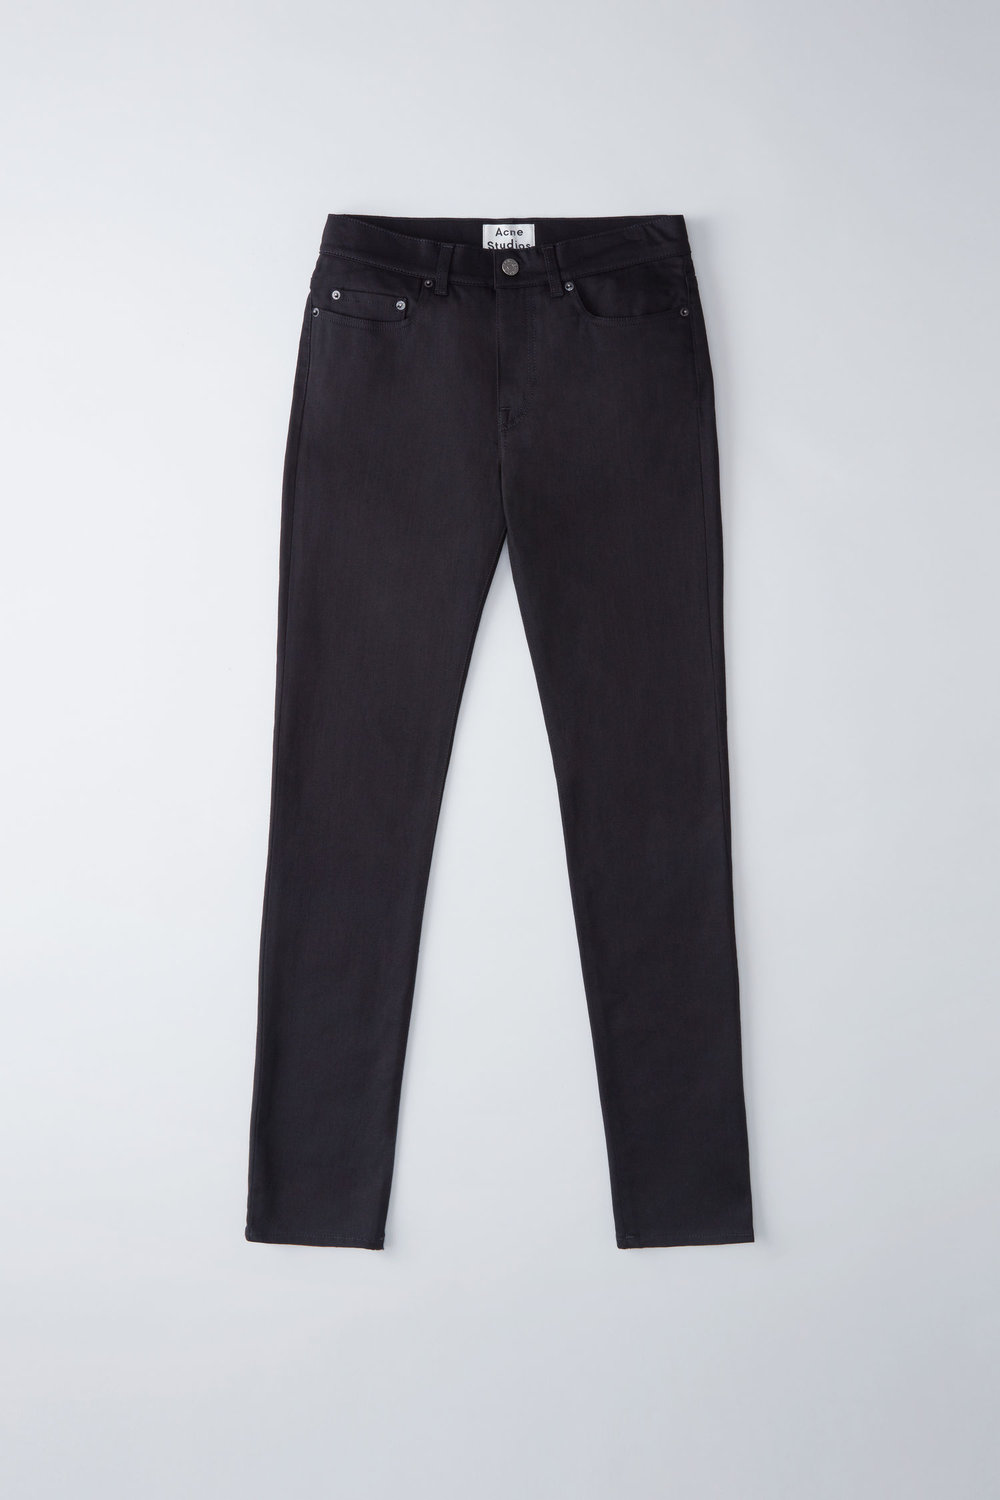 Acne_studios_thin_stay_cash_jeans.jpg